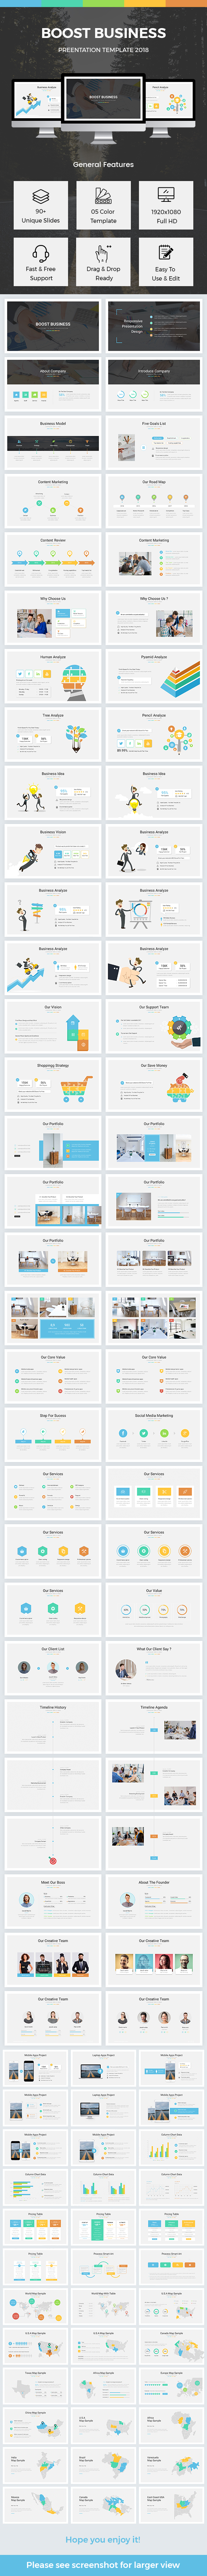 Boost Business Google Slides Template 2018 - Google Slides Presentation Templates